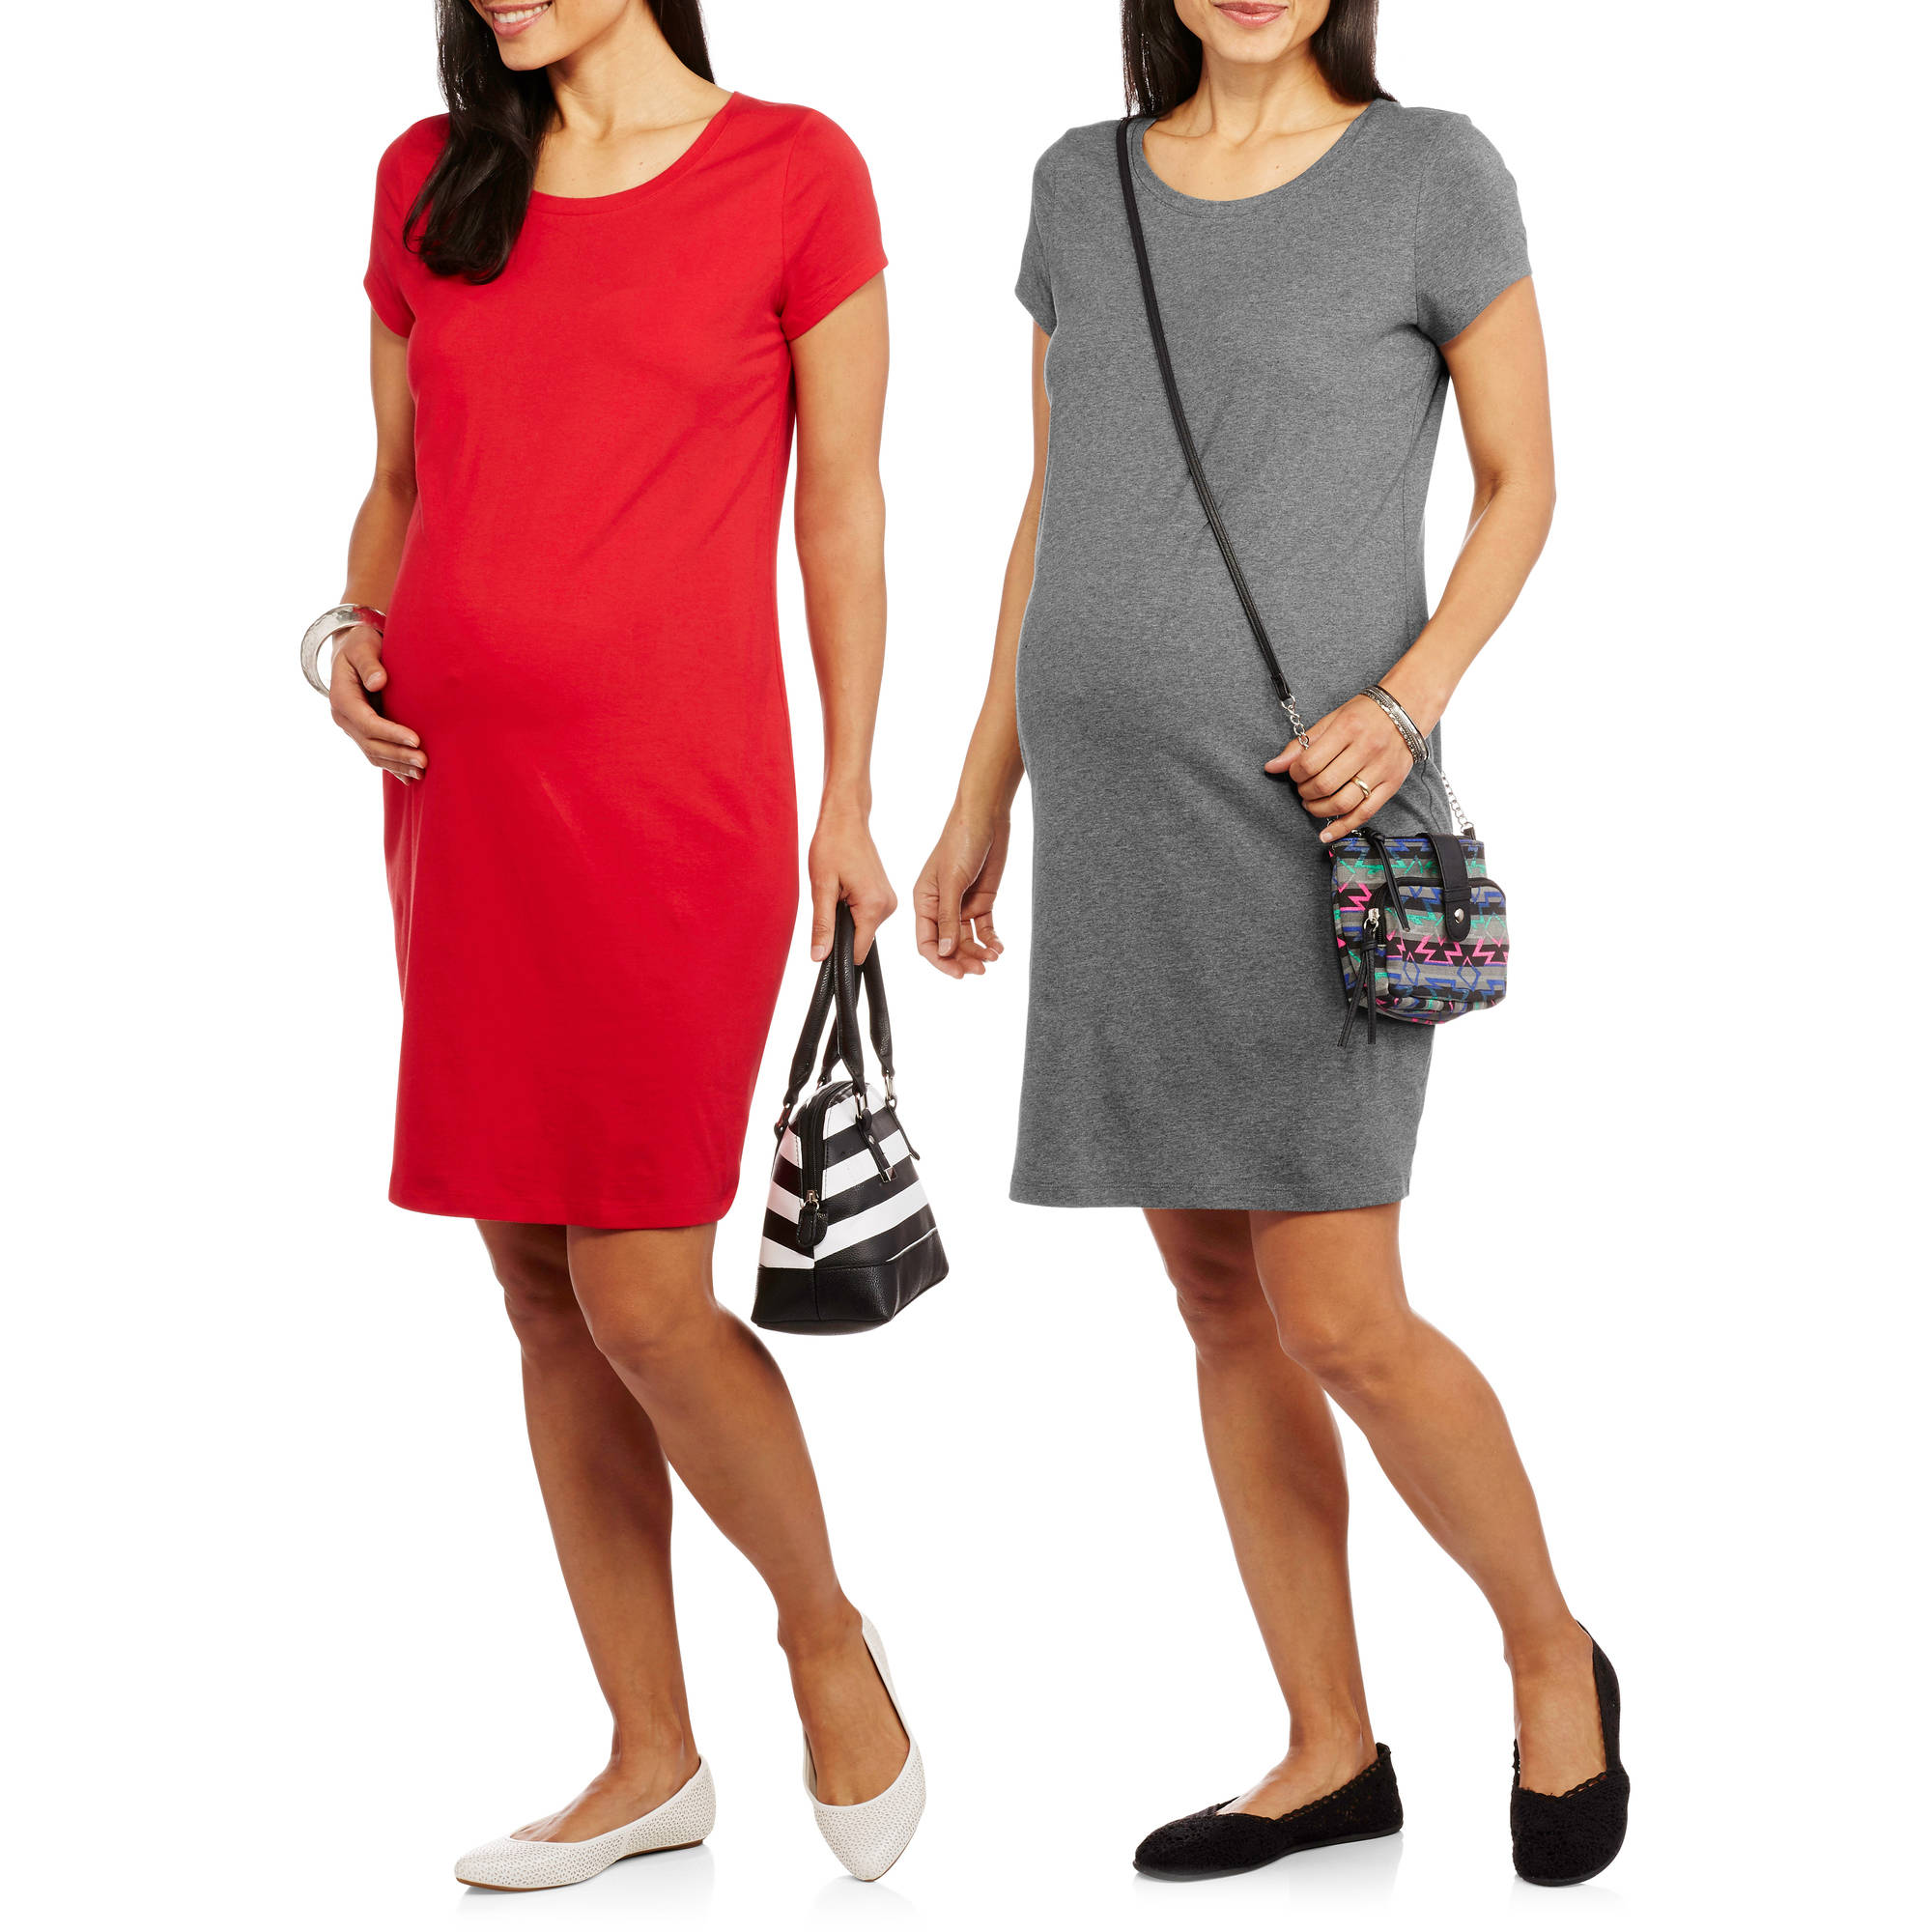 Faded Glory Maternity Basic T-Shirt Dress, 2-Pack